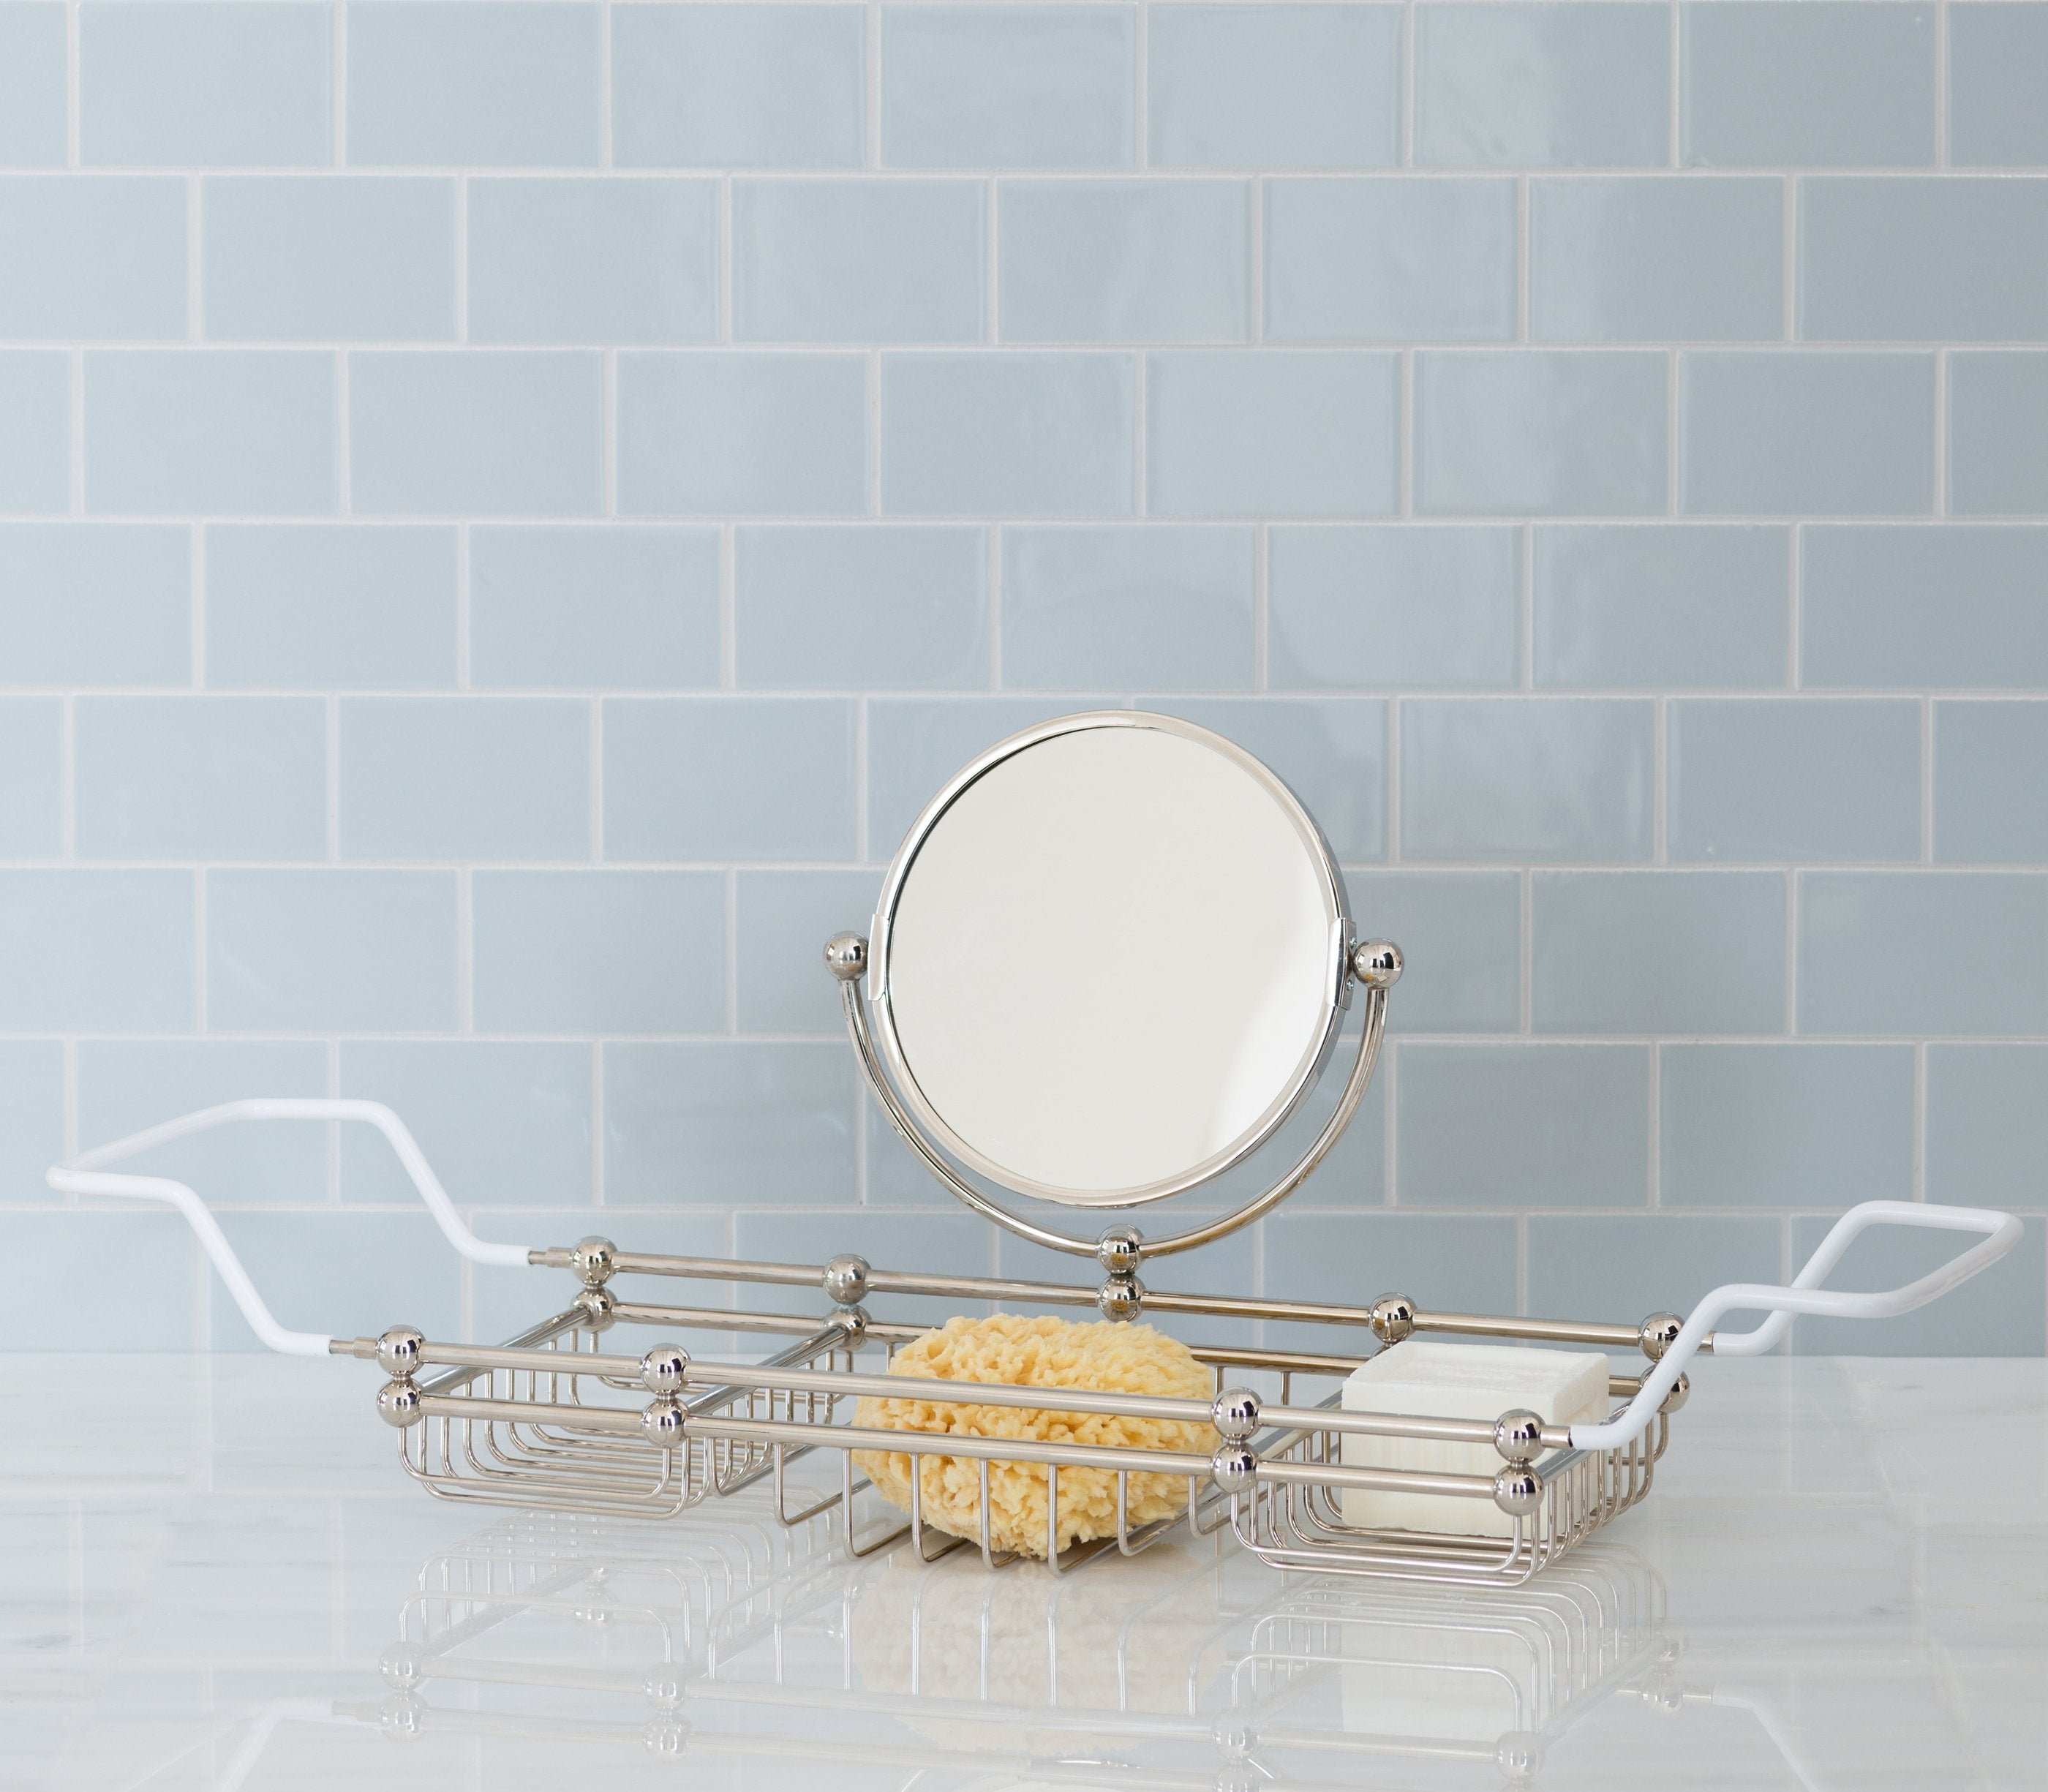 Bath Rack with Mirror Product Image 1